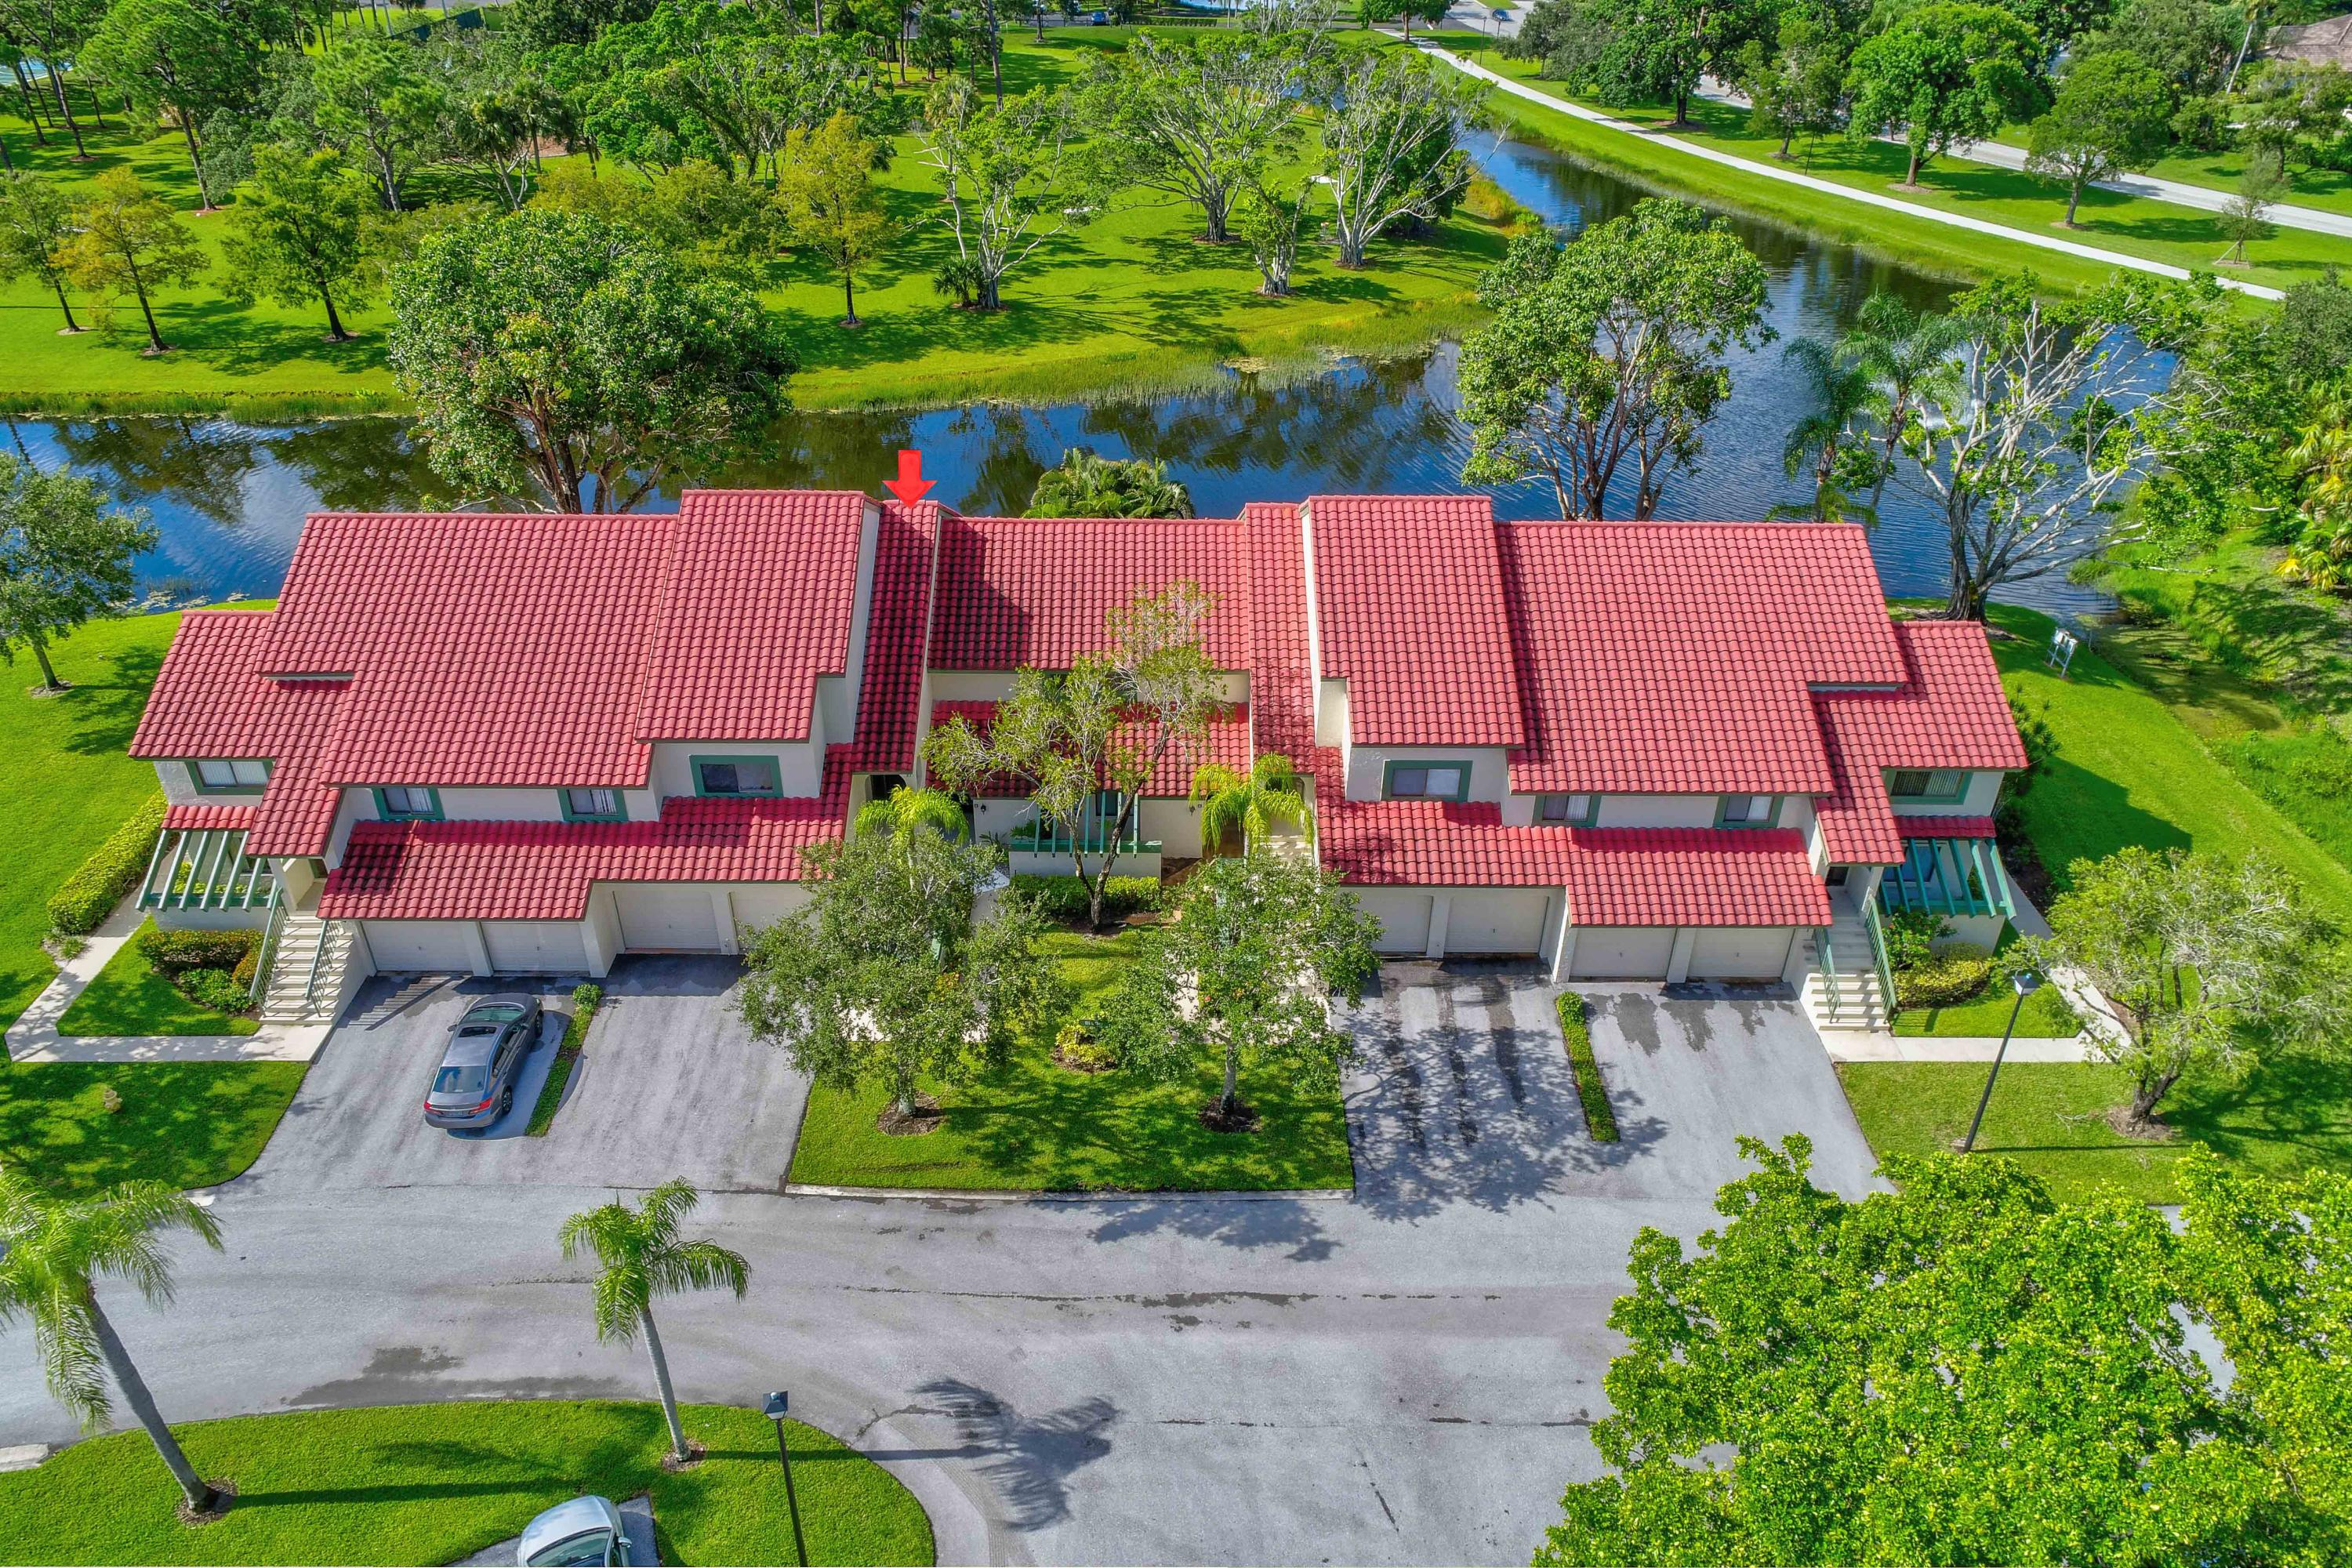 19 Lexington Lane F, Palm Beach Gardens, Florida 33418, 2 Bedrooms Bedrooms, ,2 BathroomsBathrooms,A,Condominium,Lexington,RX-10496846